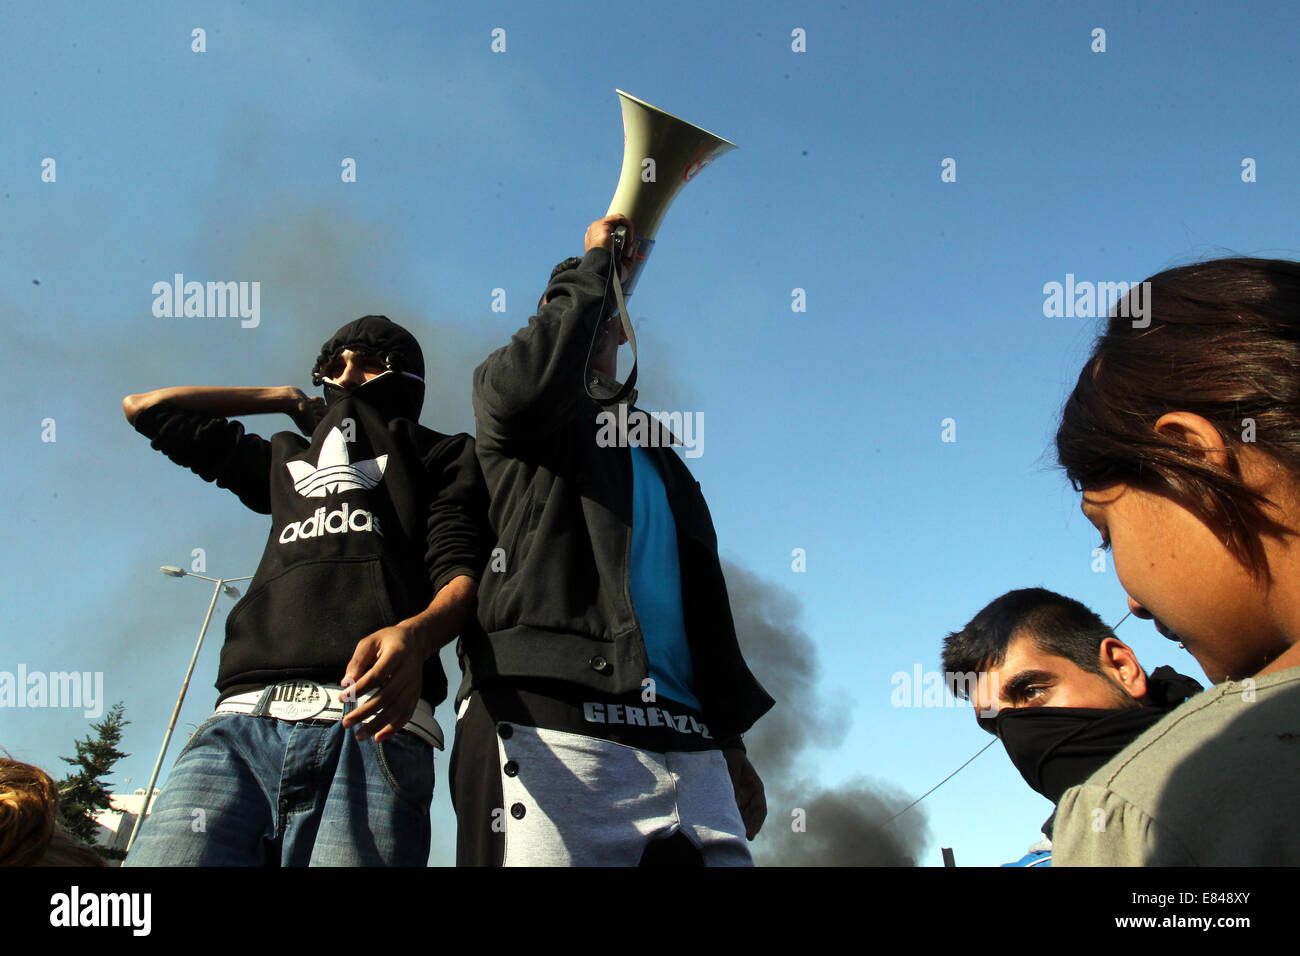 Athens. 30th Sep, 2014. Members of the Greek Roma community attend a protest in Athens, Greece on Sept. 30, 2014. - Stock Image